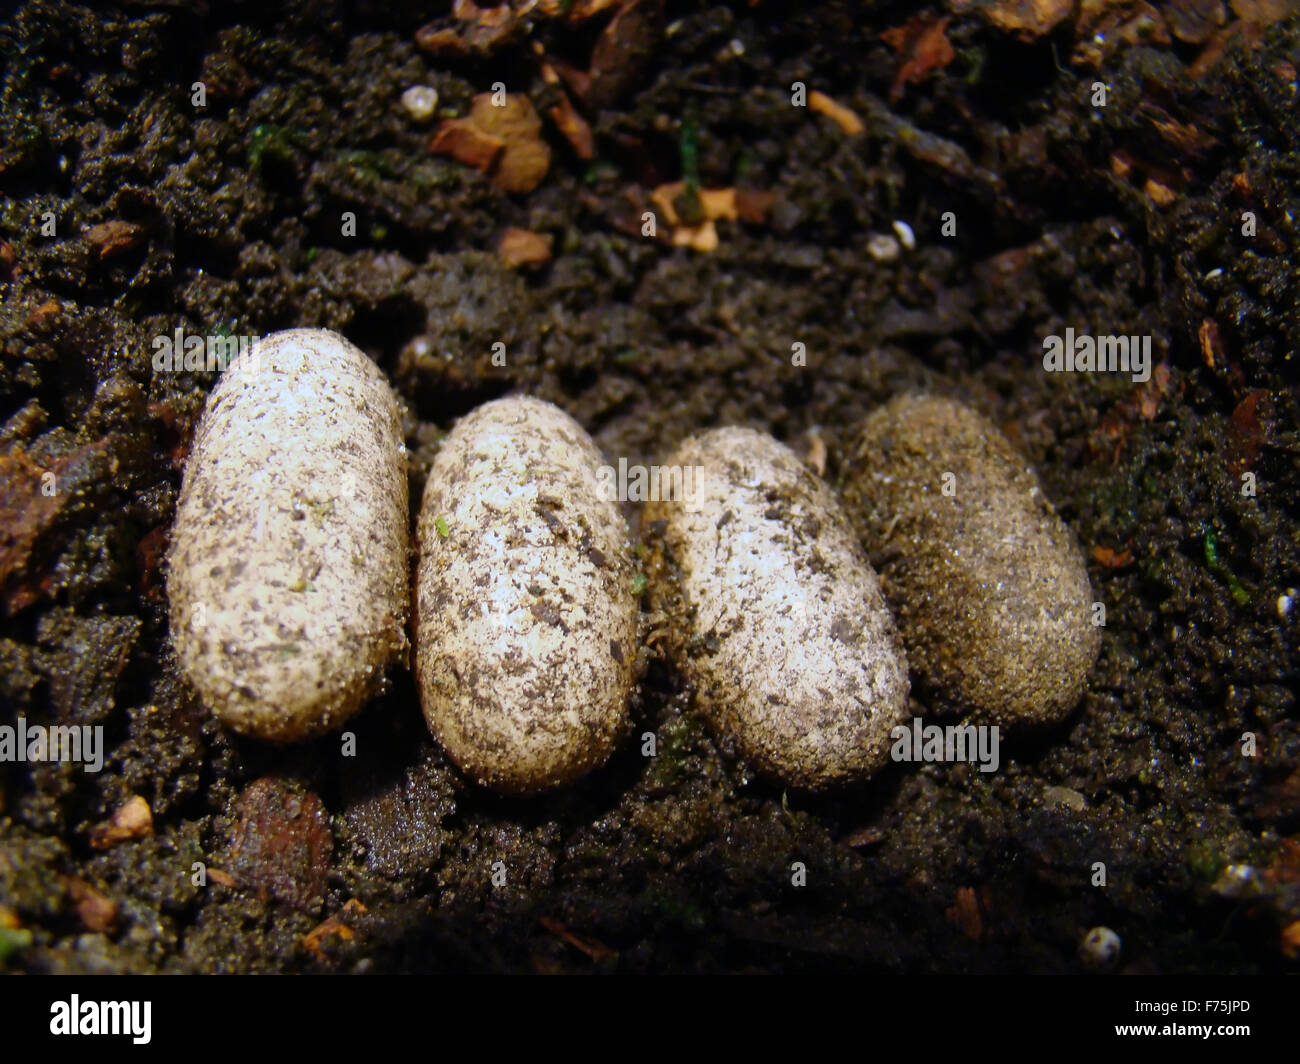 Gecko Eggs Stock Photo Royalty Free Image 90478933 Alamy